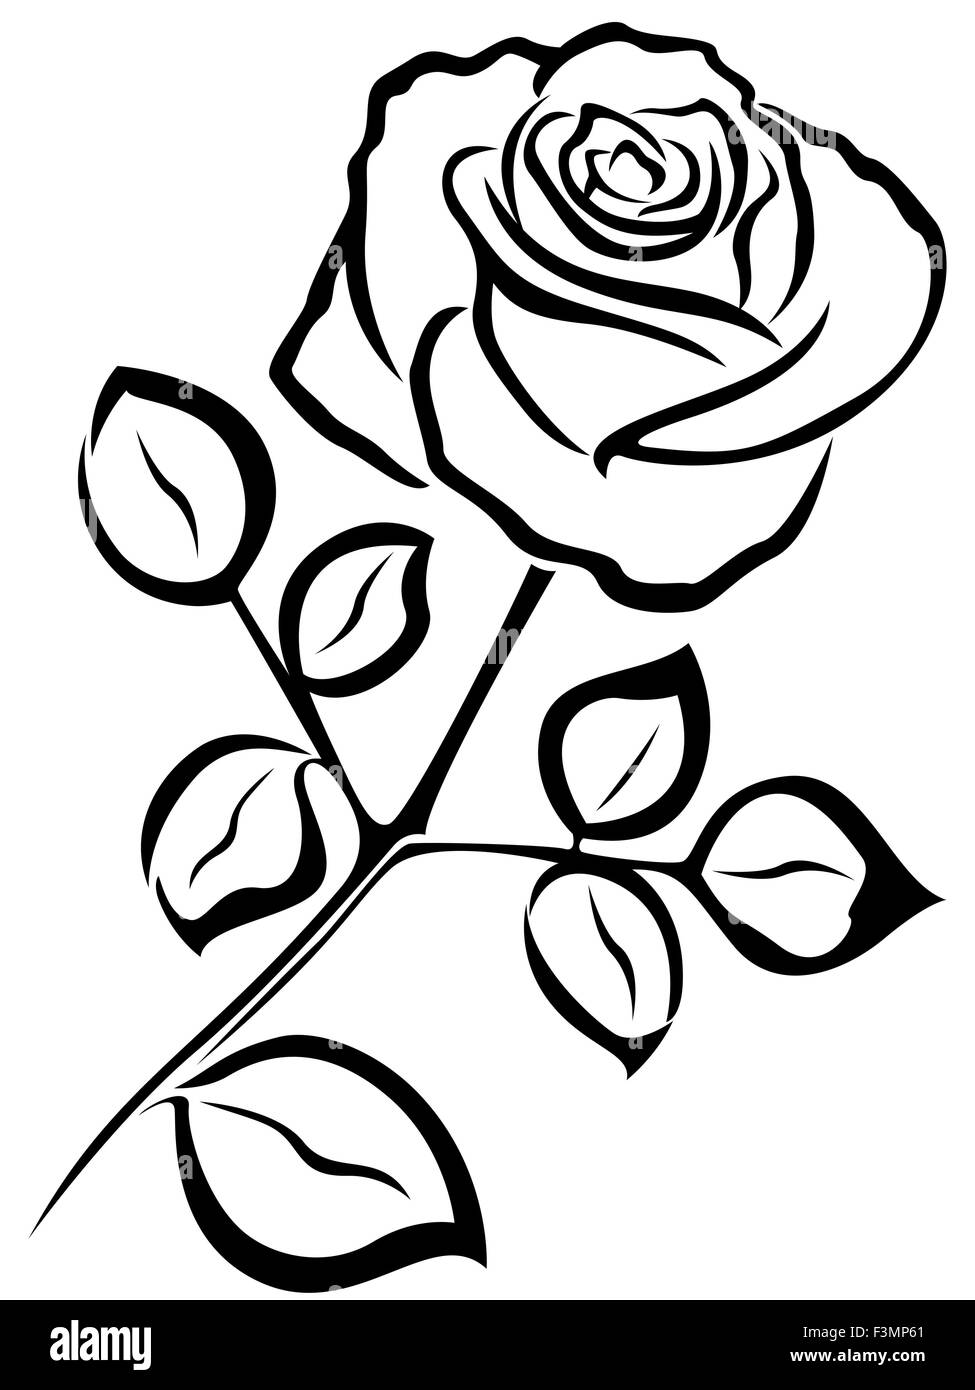 Black Vector Outline Of Single Rose Flower Isolated On A White Stock